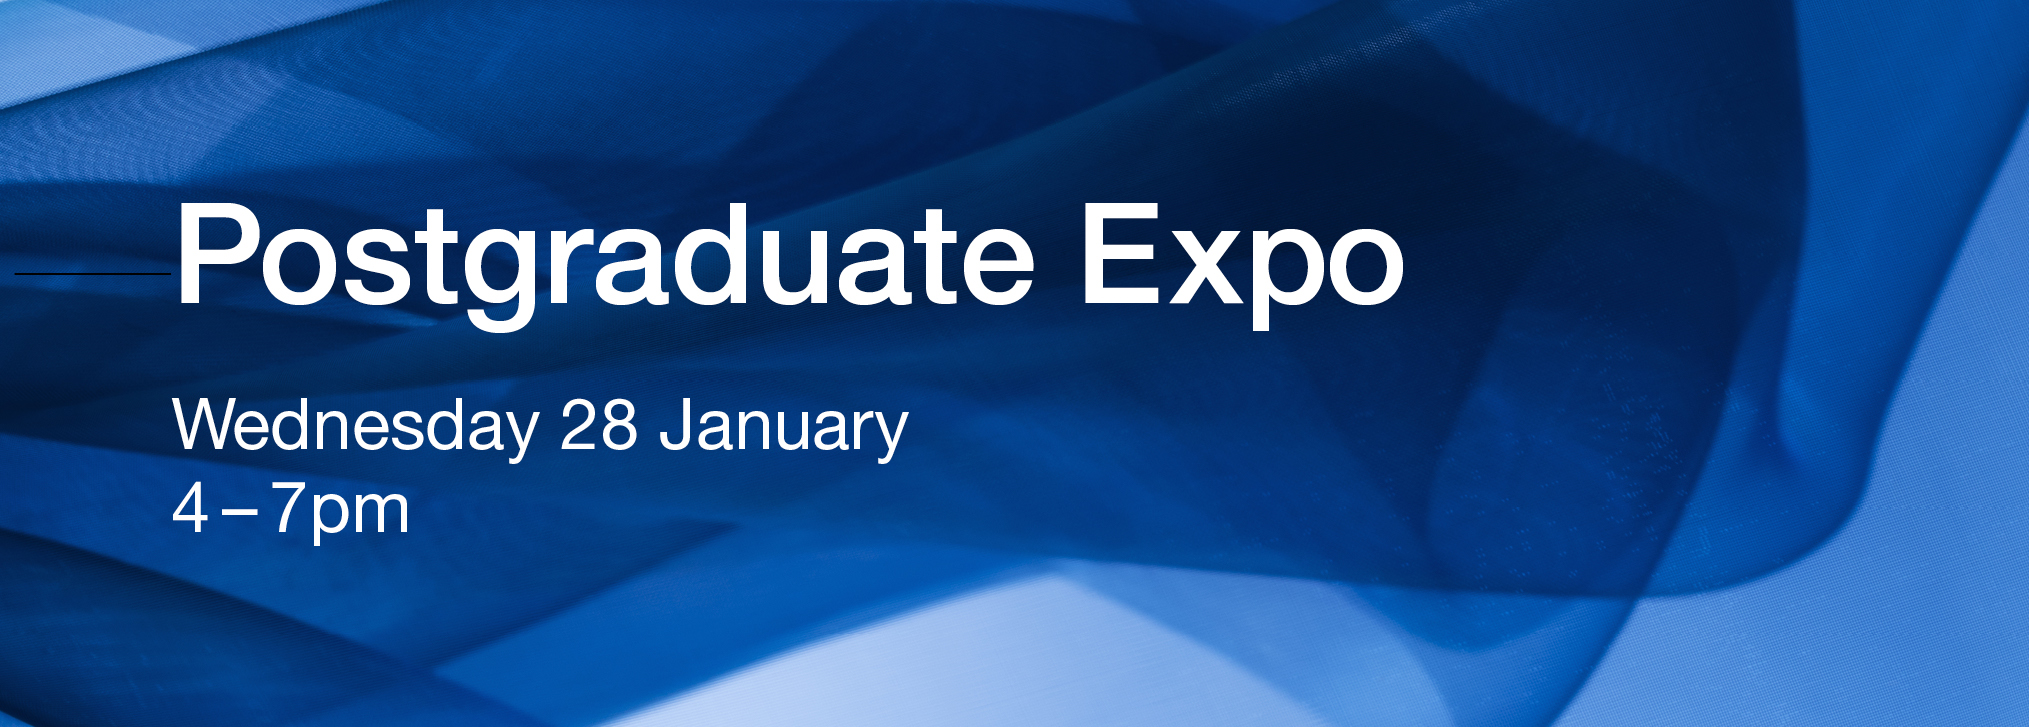 Postgrad Expo http://monash.edu/postgraduate-events/expo/?utm_source=medicine&utm_medium=carousel&utm_content=homepage&utm_campaign=pg_expo_2015